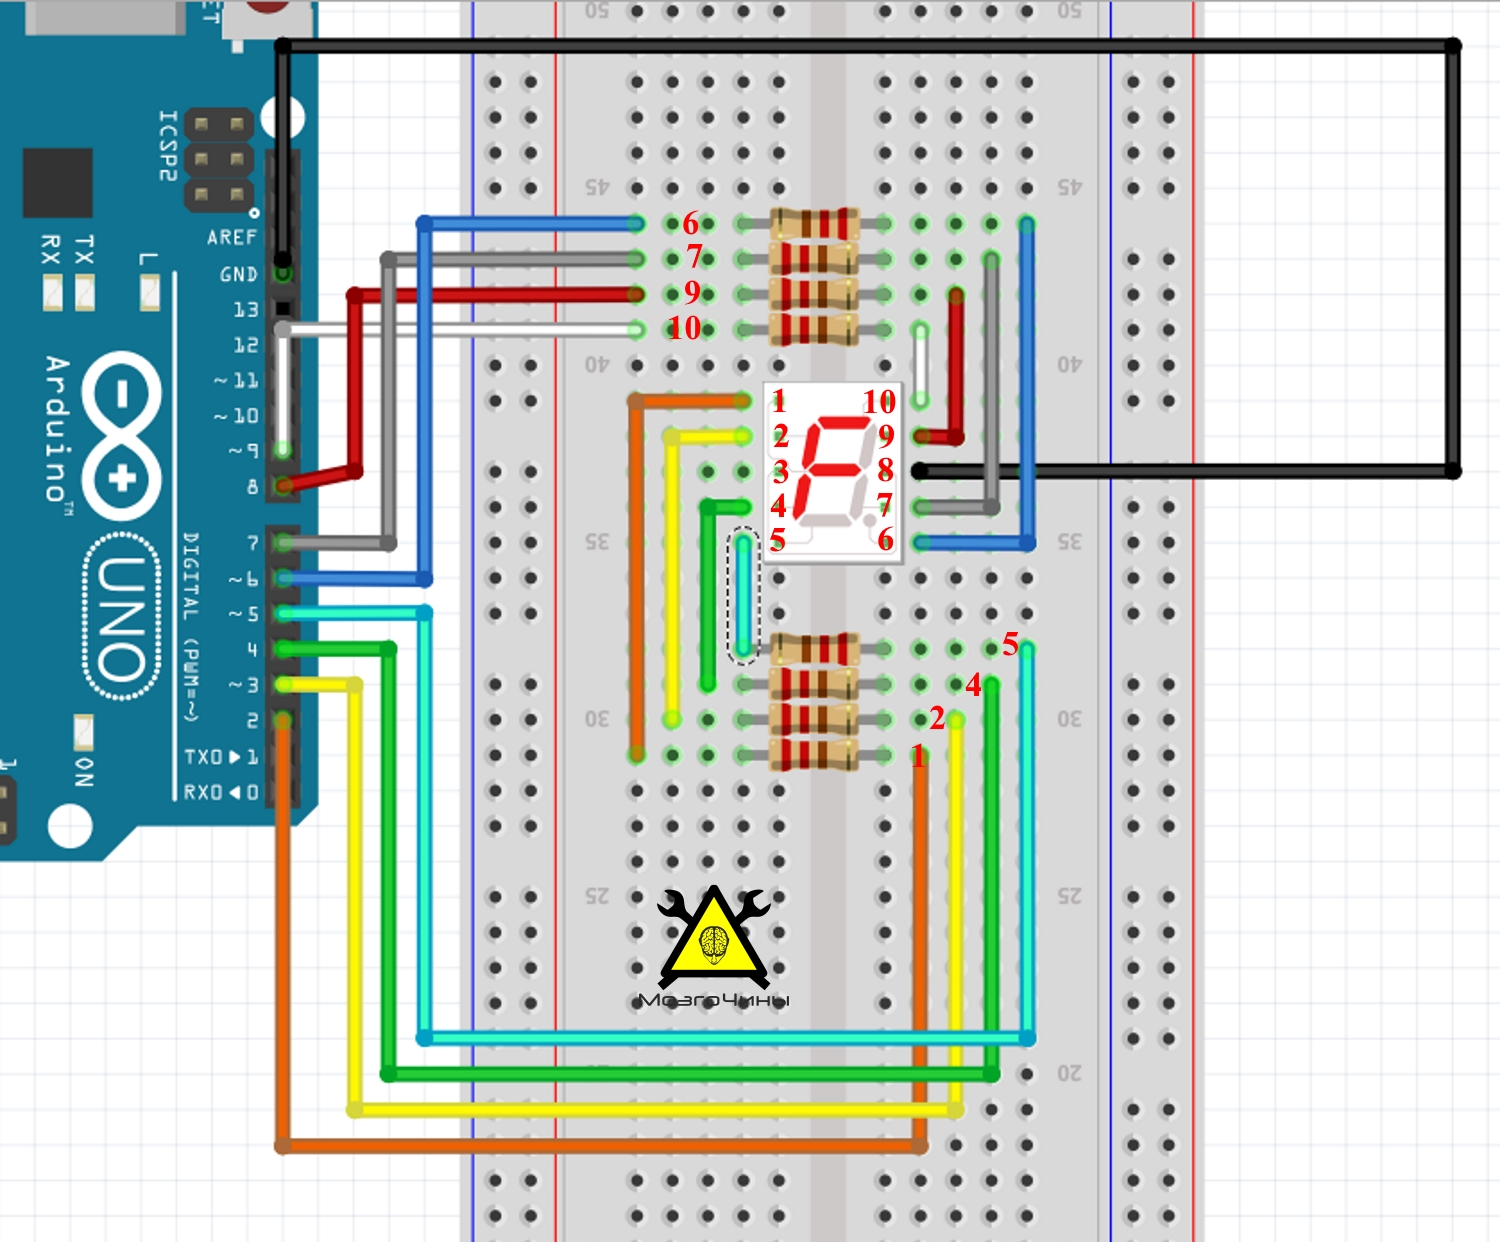 blogspot - Microcontroller home projects